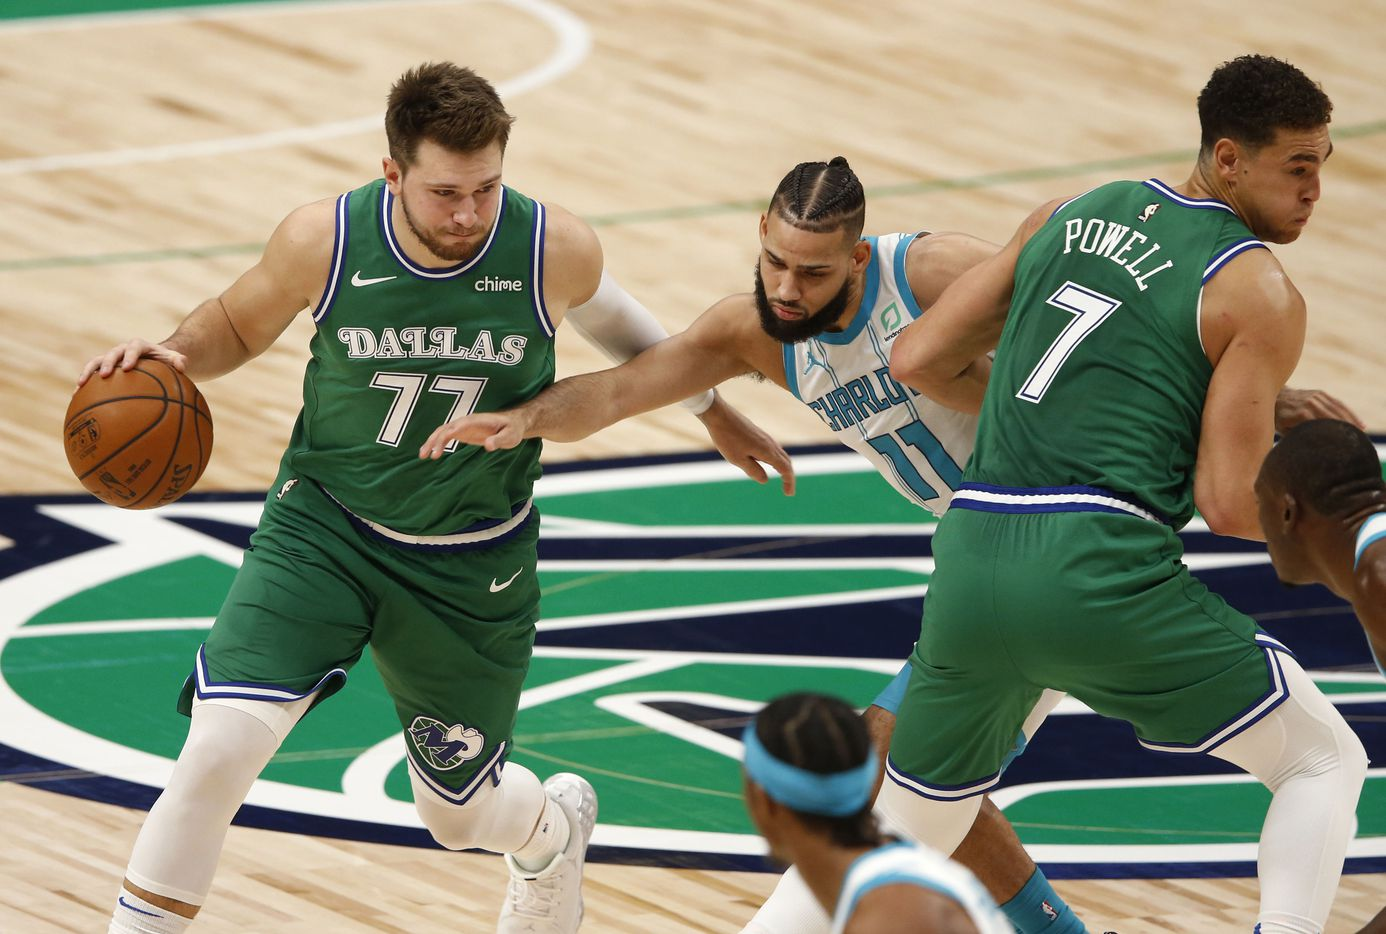 Dallas Mavericks guard Luka Doncic (77) uses a screen from Dallas Mavericks center Dwight Powell (7) to get by Charlotte Hornets forward Cody Martin (11) during the first quarter of play in the home opener at American Airlines Center on Wednesday, December 30, 2020 in Dallas. (Vernon Bryant/The Dallas Morning News)